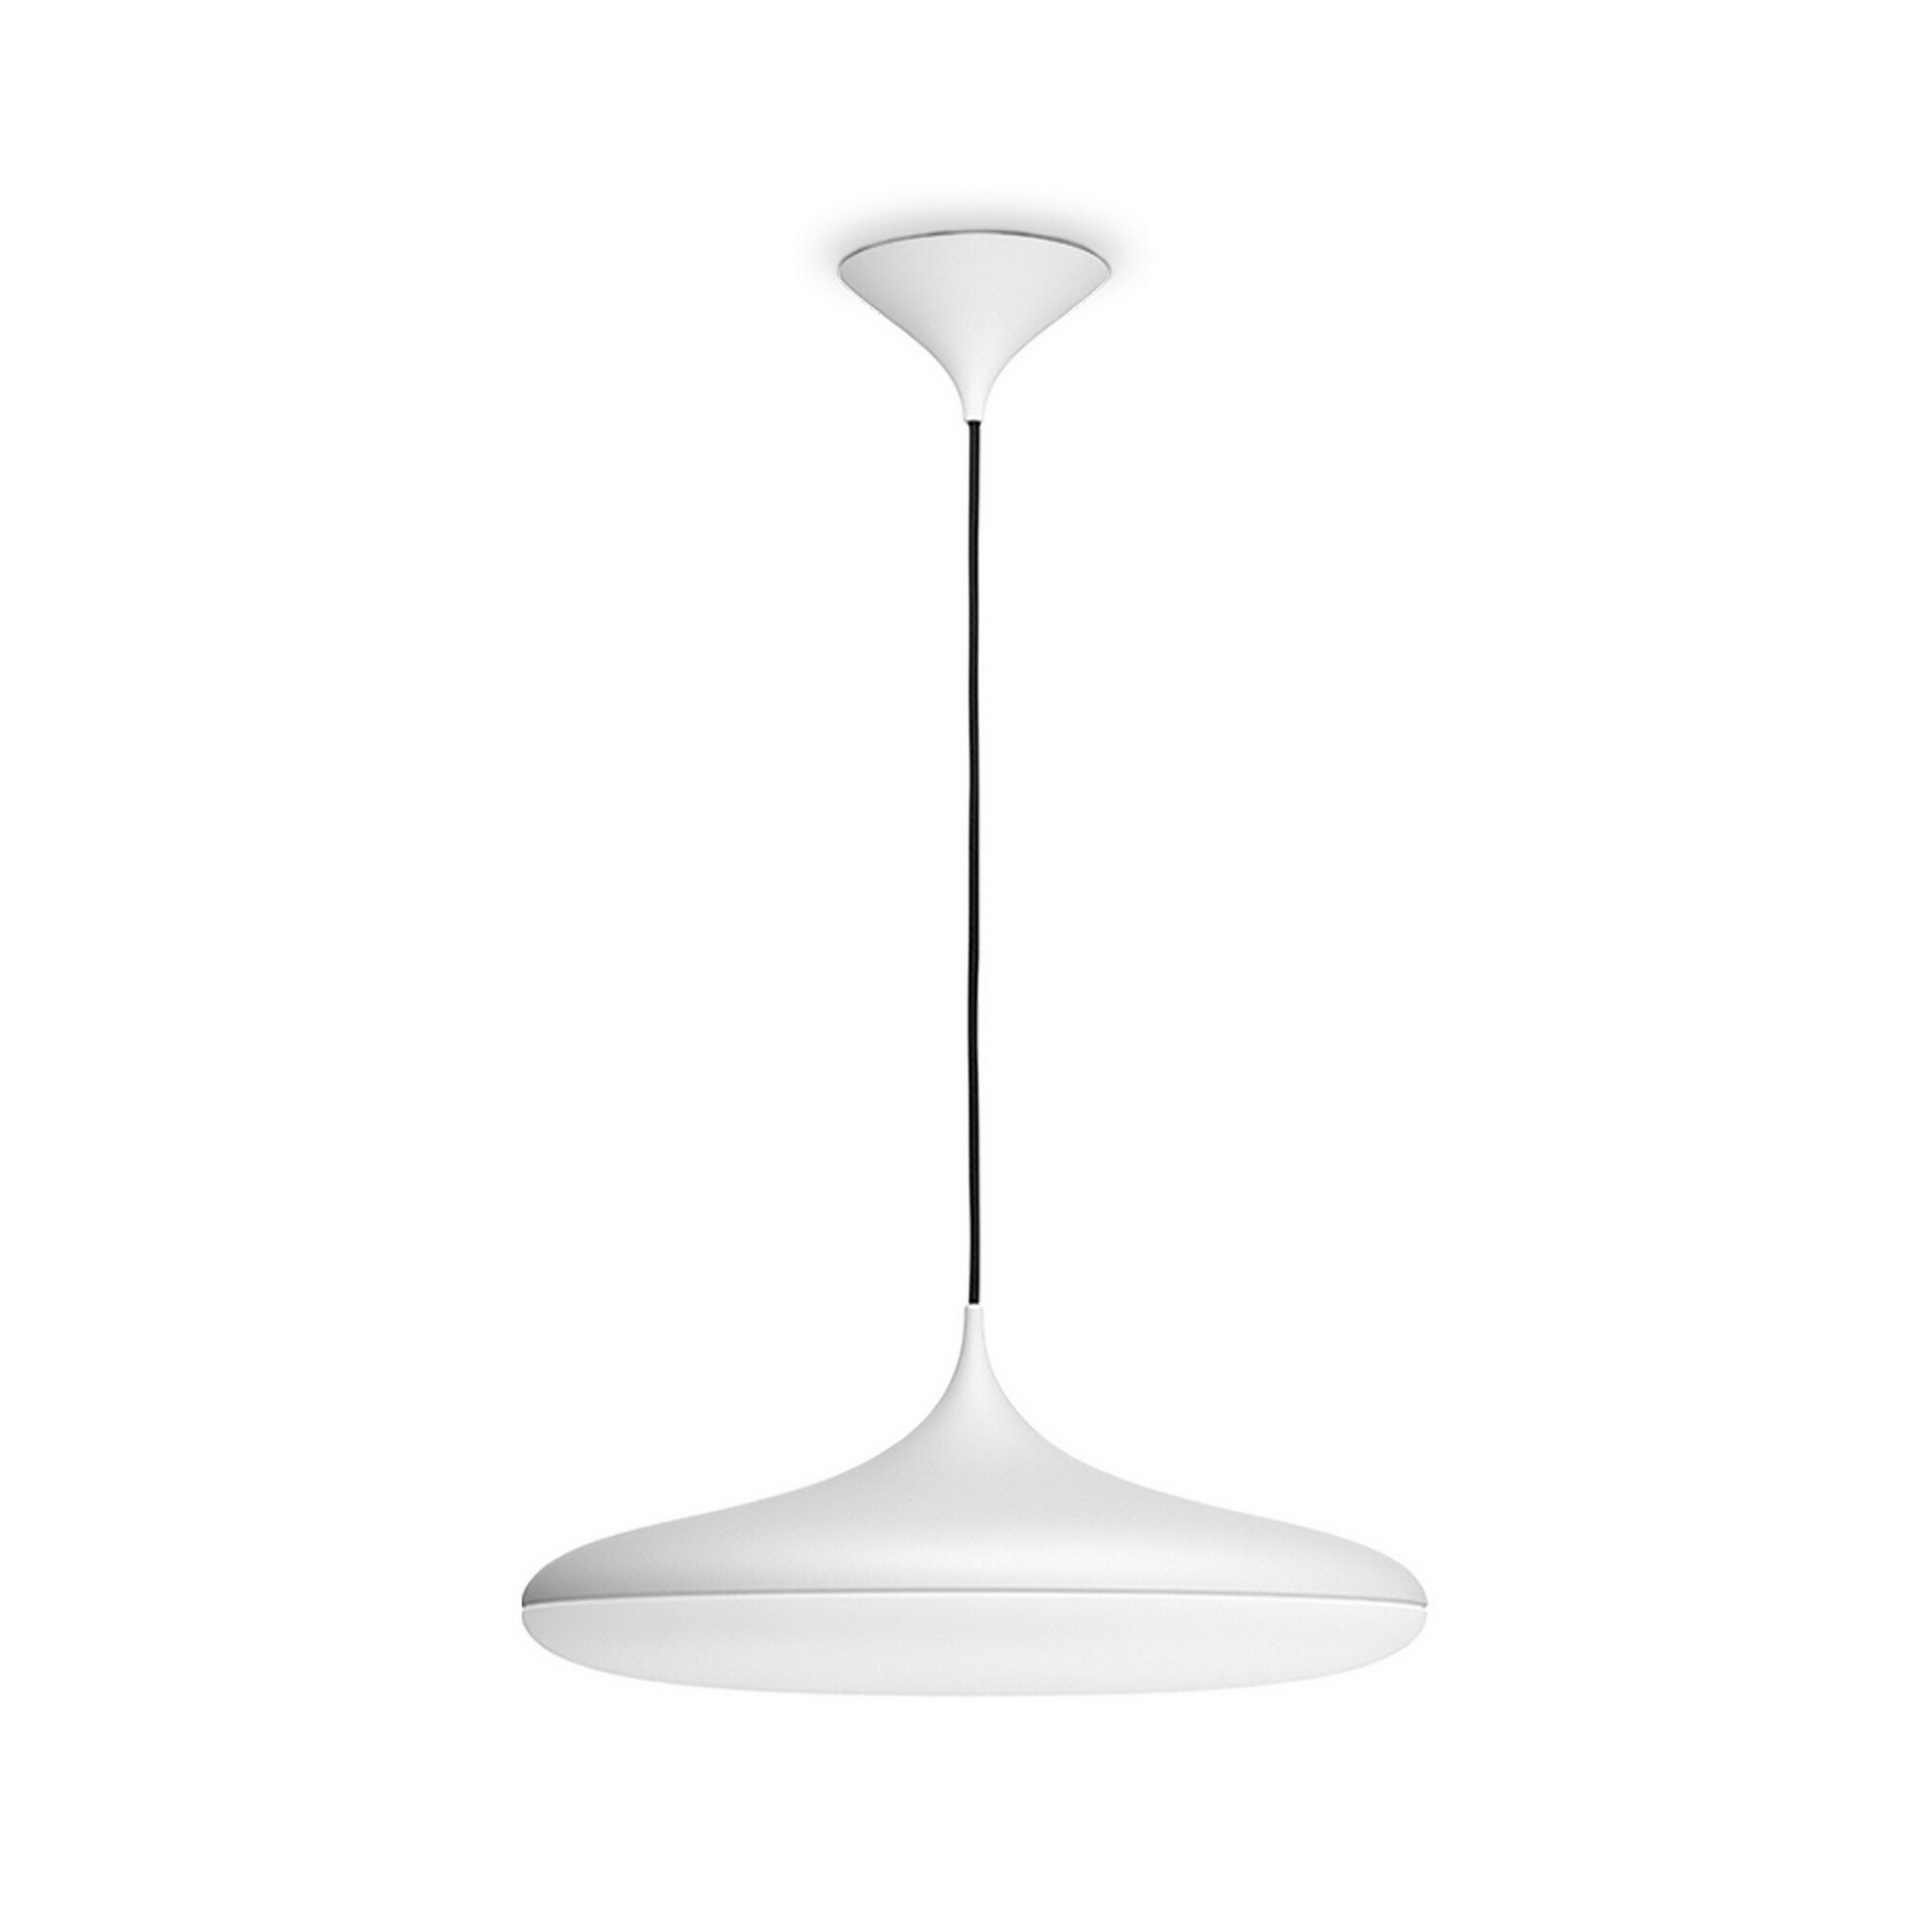 Philips HUE CHER Suspensions LED 1x34W/3000lm Blanc